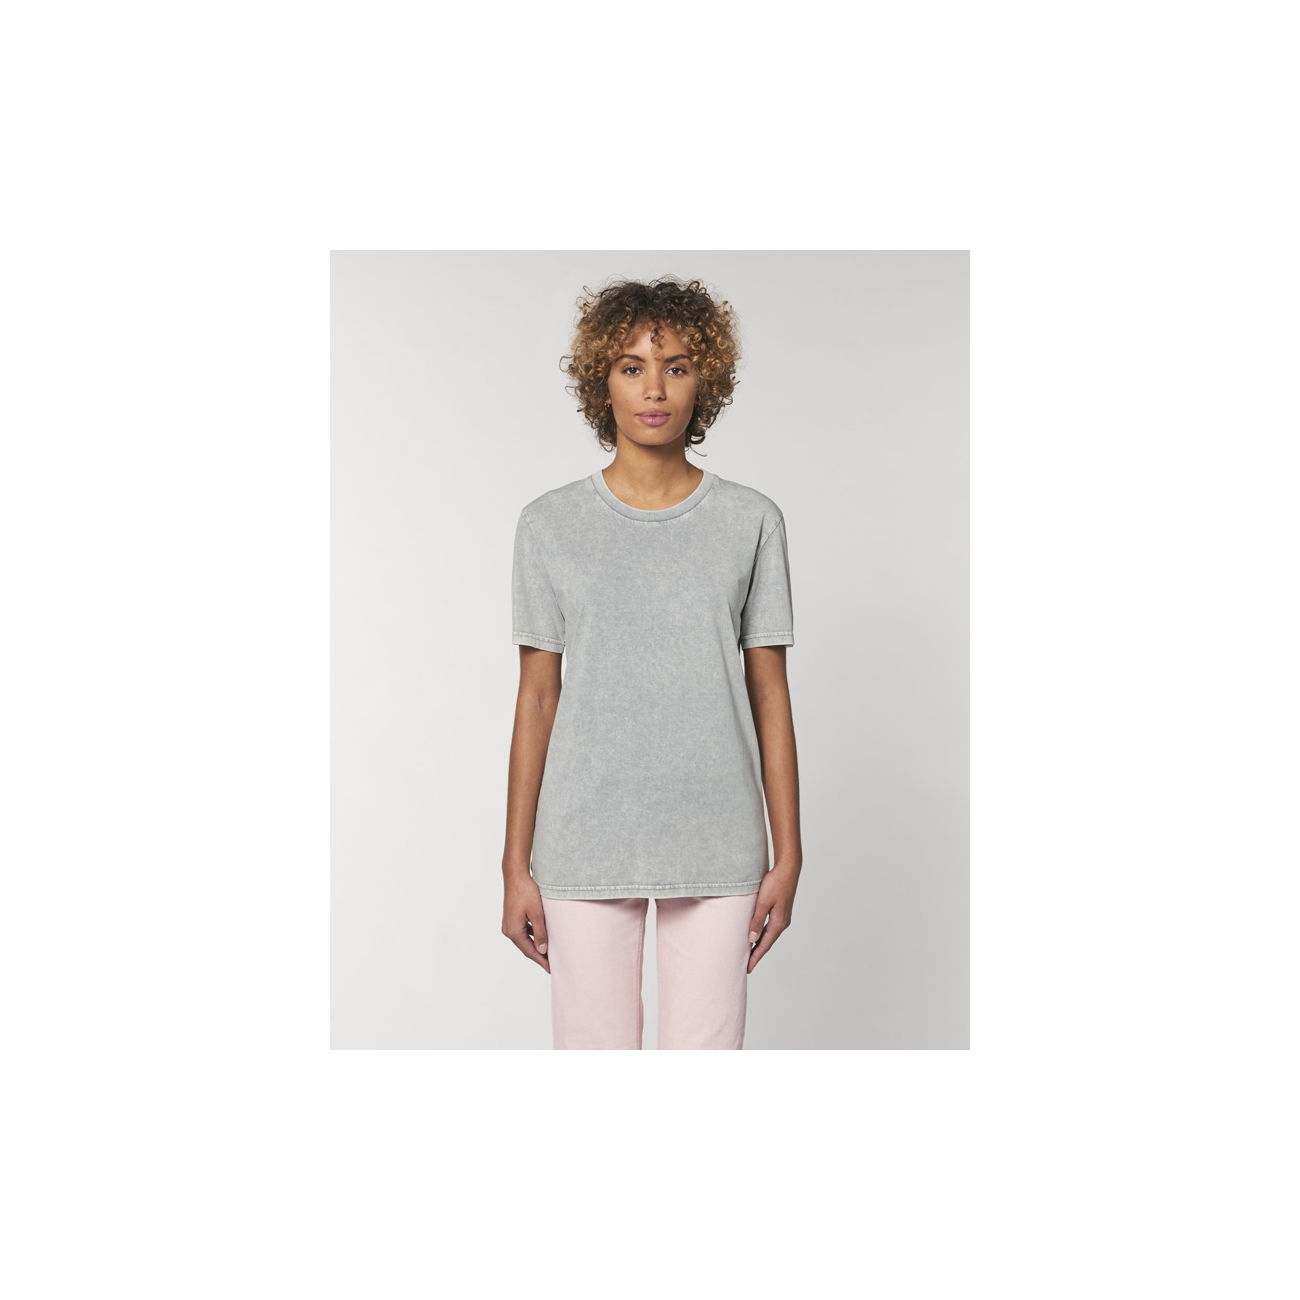 https://tee-shirt-bio.com/9730-thickbox_default/tee-shirt-coton-bio-femme-vintage-gris-clair.jpg